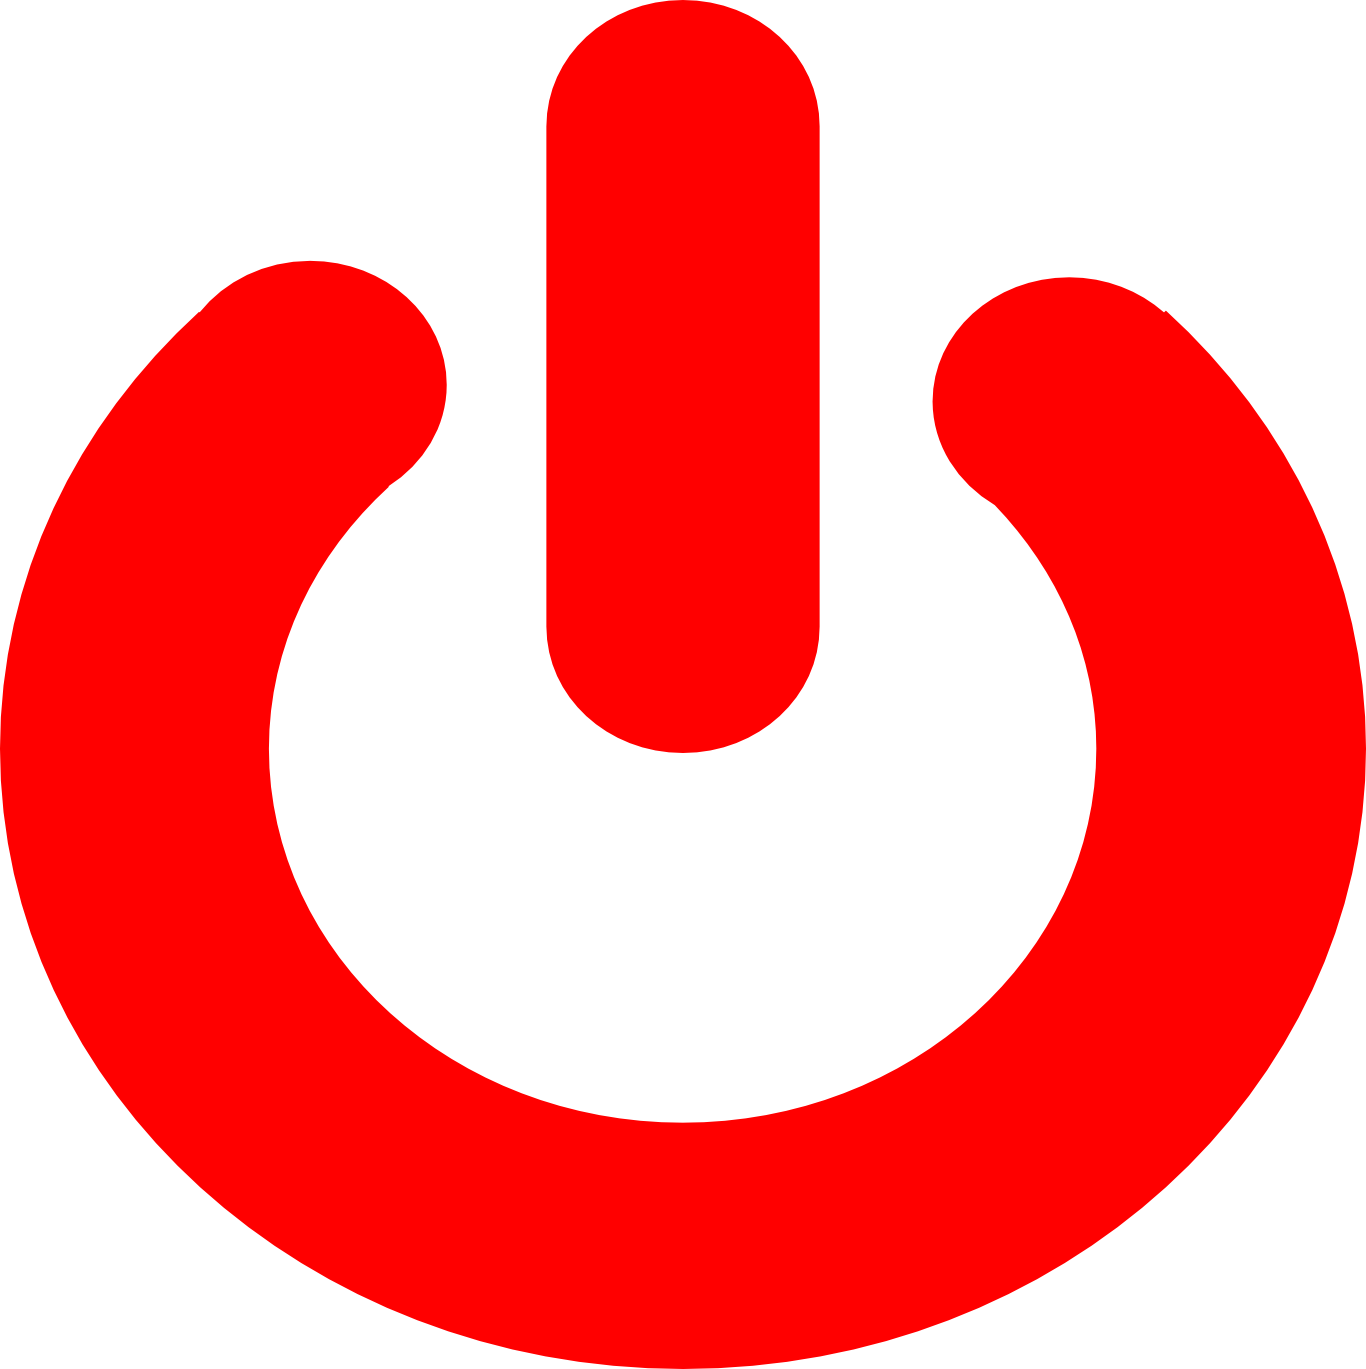 Red power button png. Free images at clker